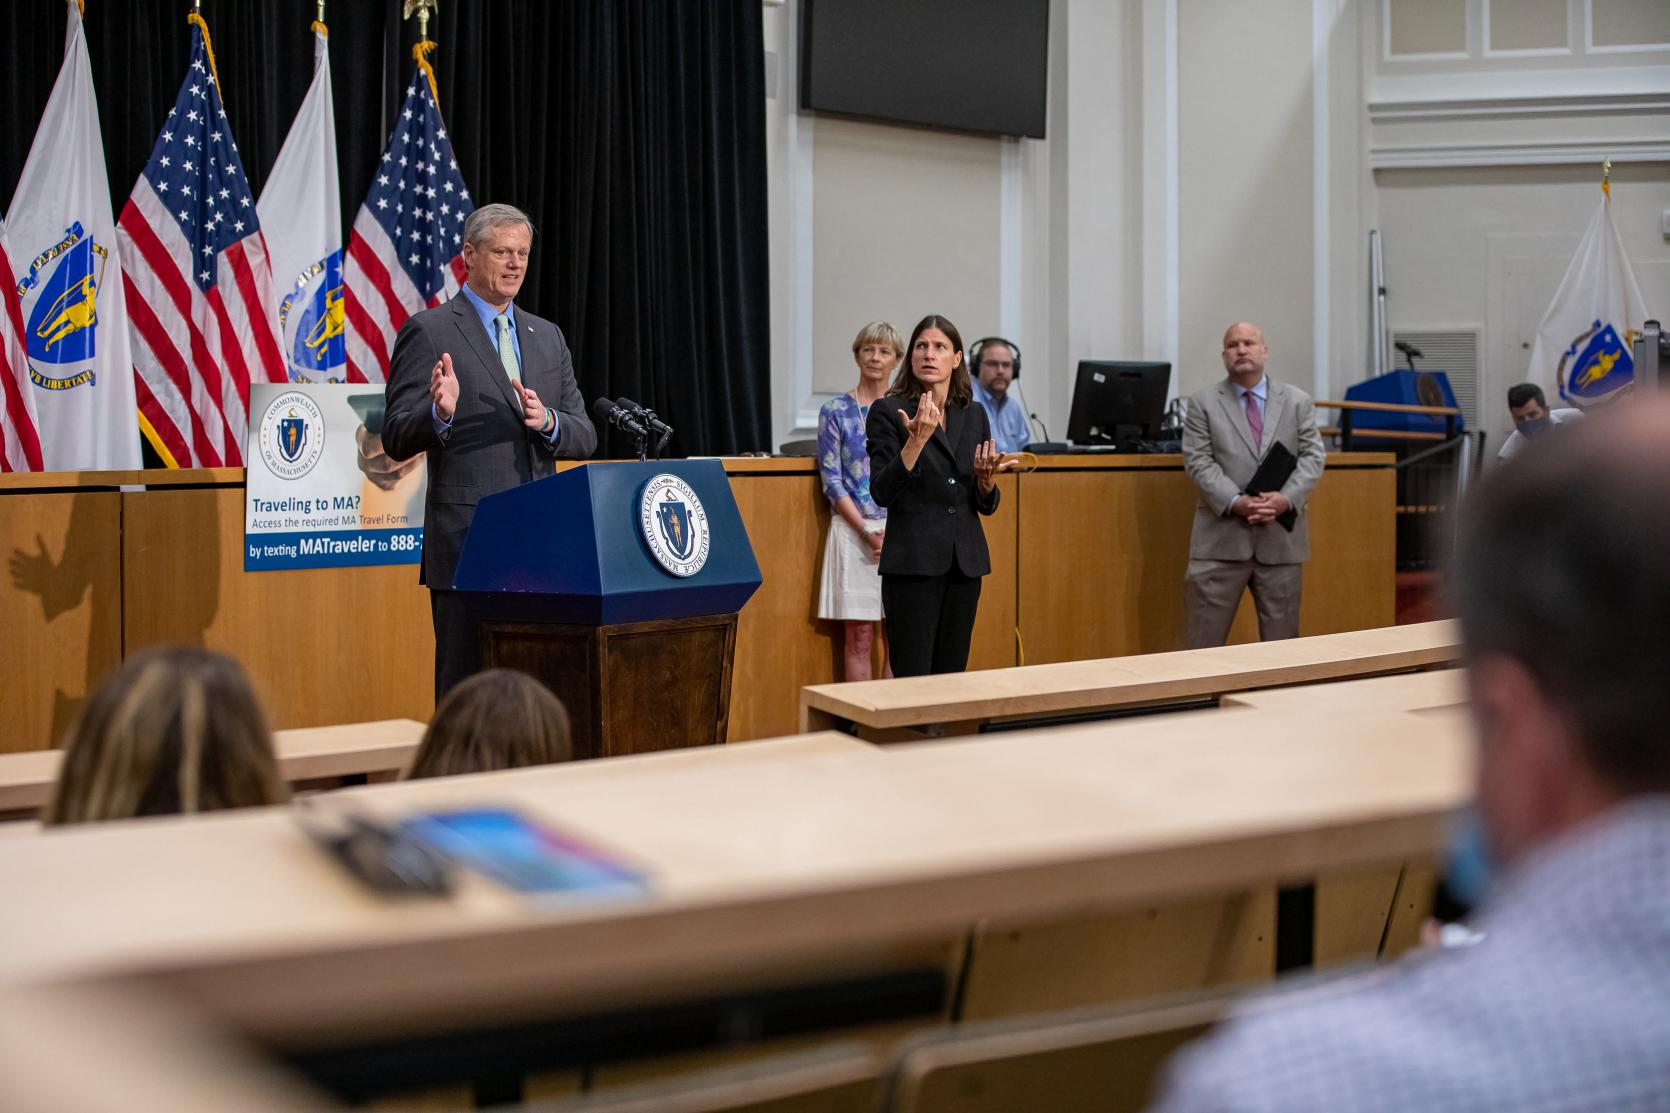 Baker-Polito Administration Announces Testing Initiatives to Support K-12 Schools